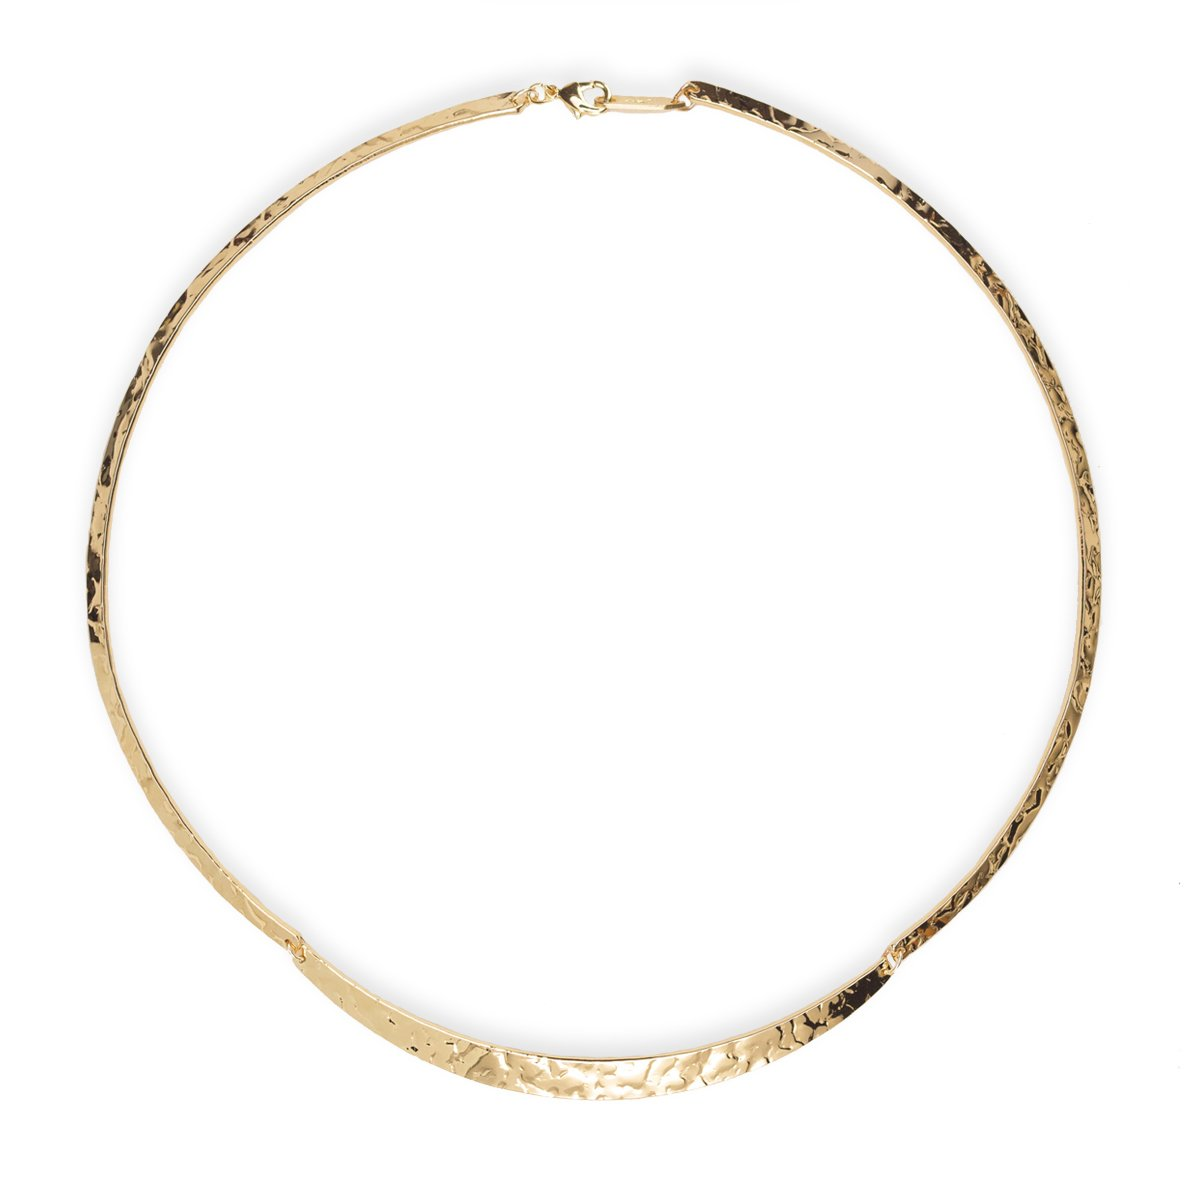 Holly Yashi Gemma Necklace, Made in California (Gold-Plated-Base)